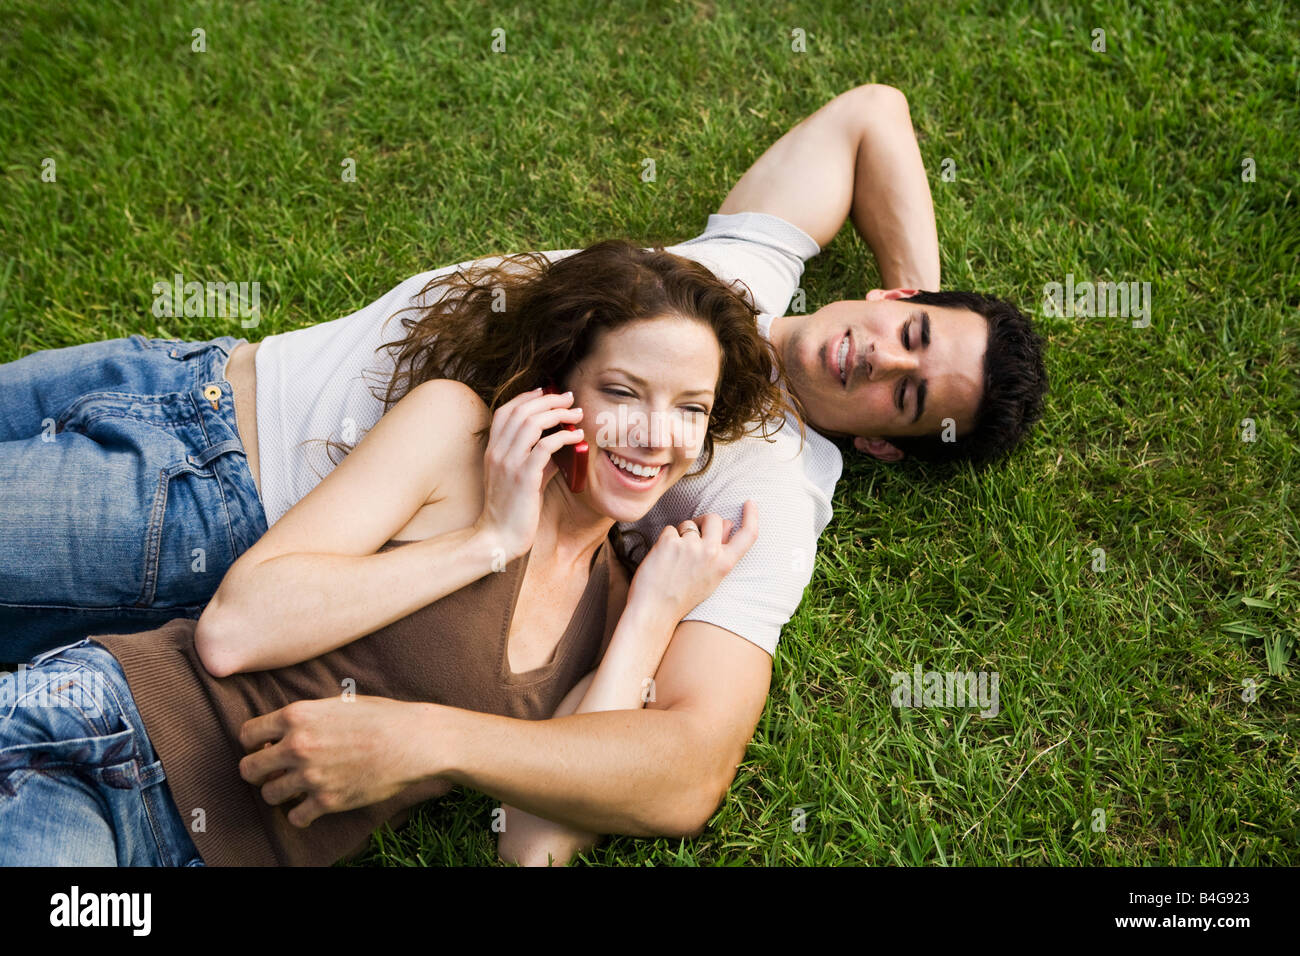 A young couple snuggling on a lawn Stock Photo